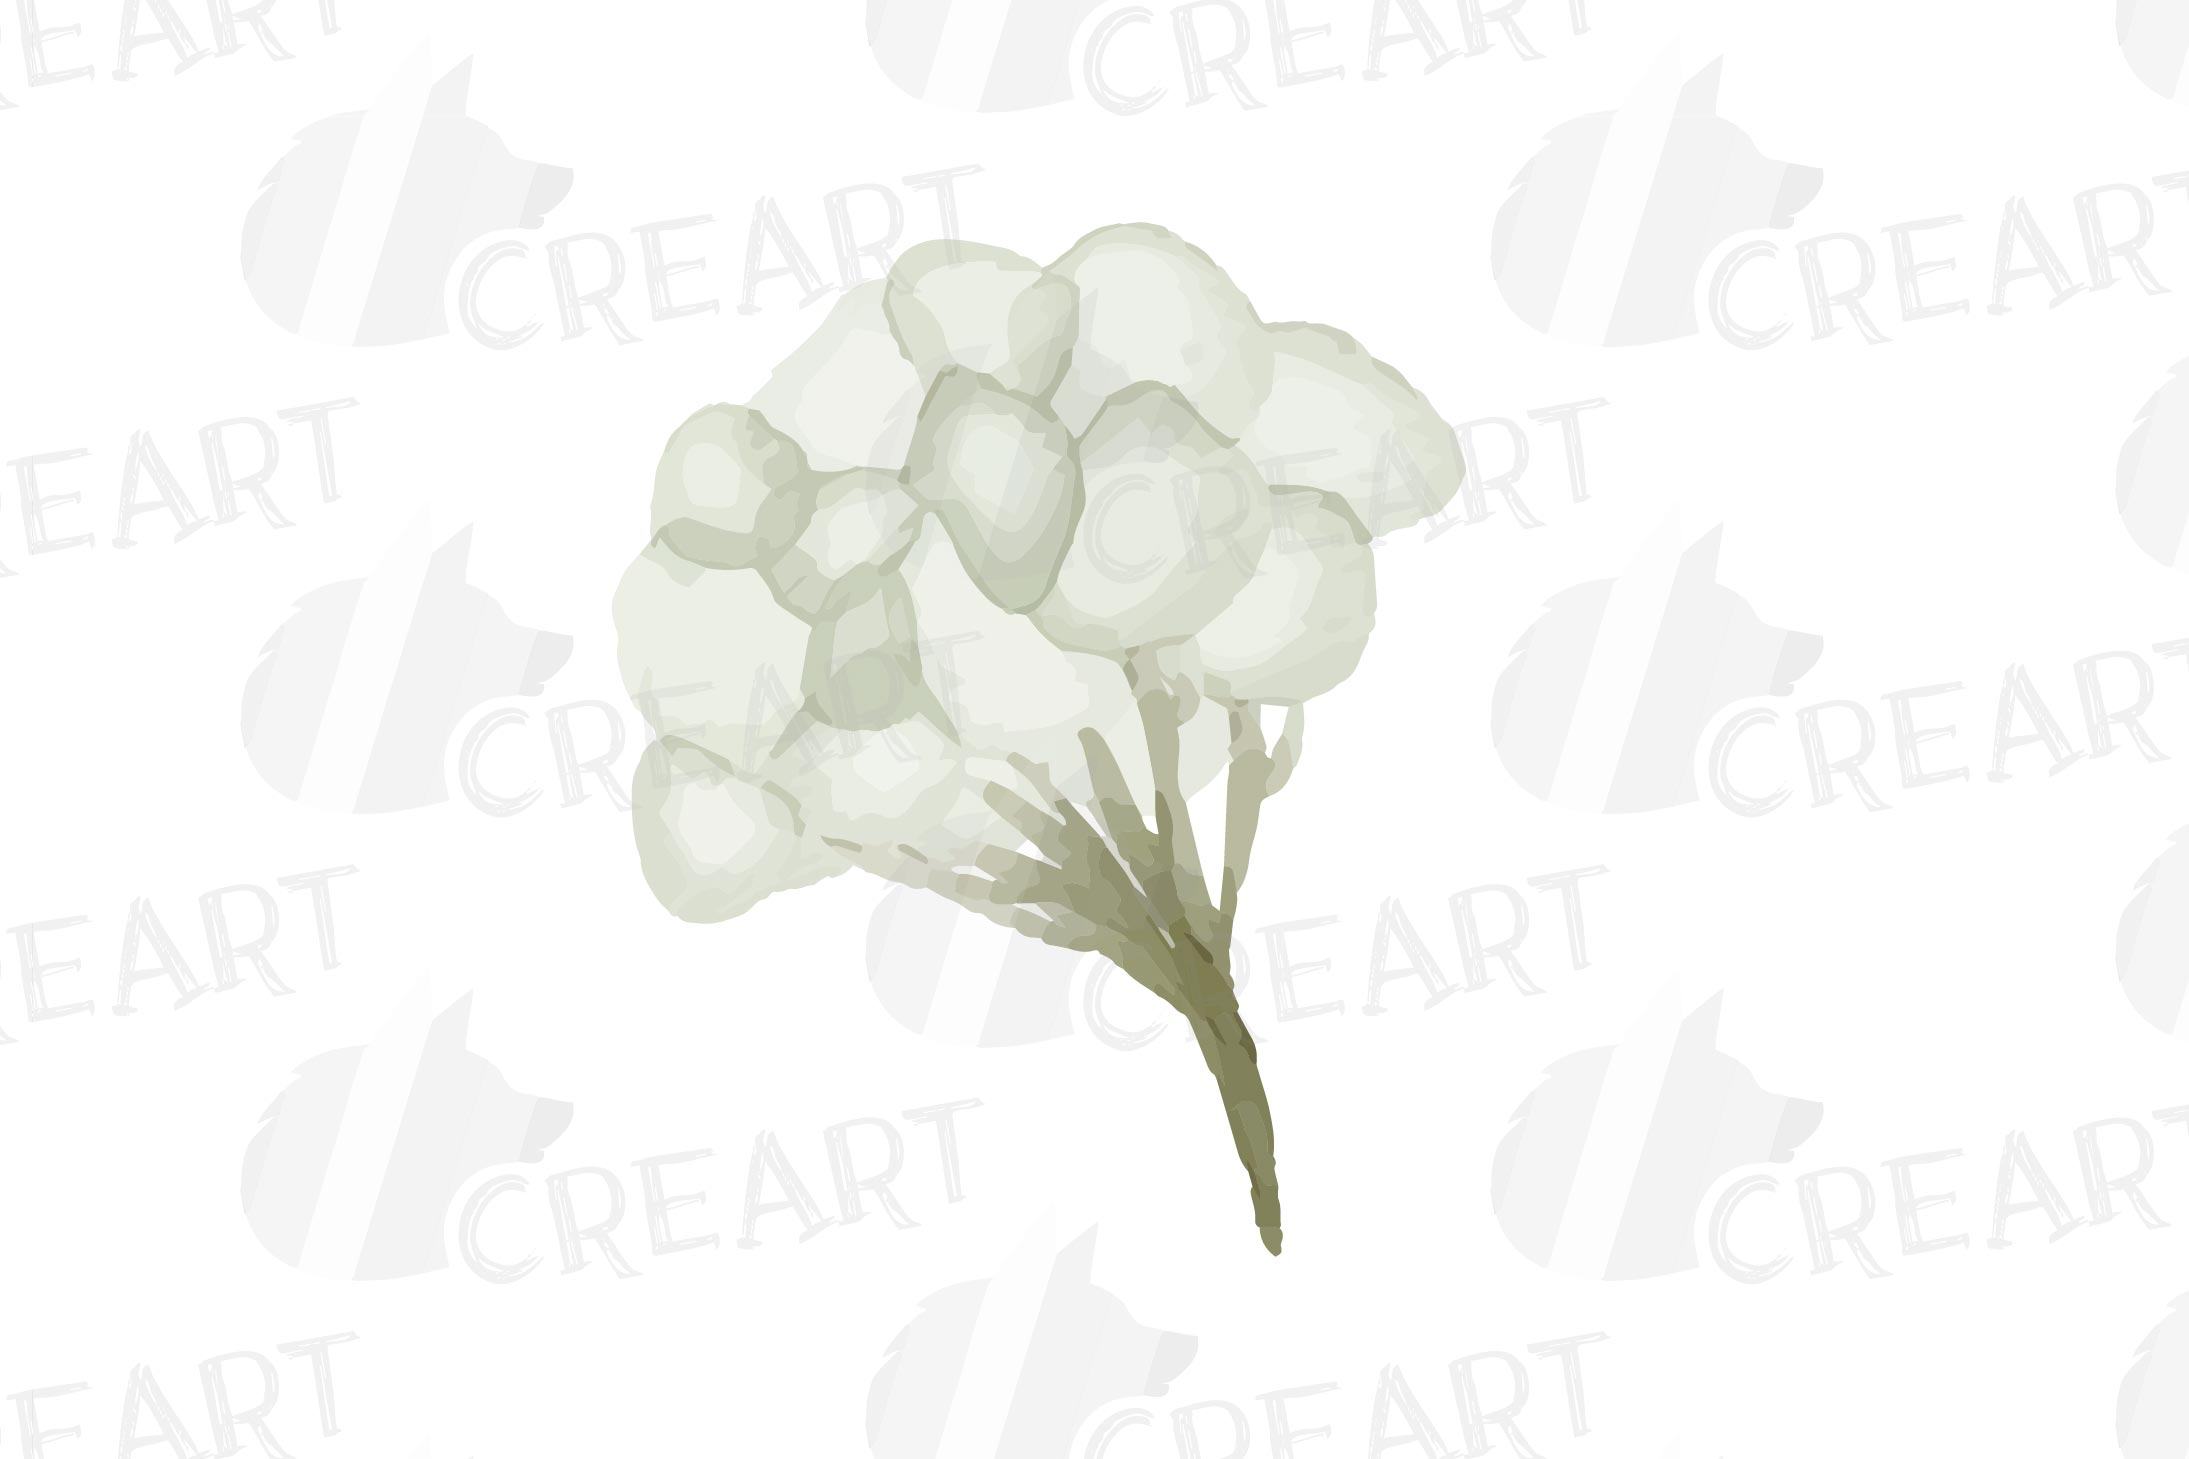 Cotton bolls and fir branch leafy autumn and winter decor example image 14